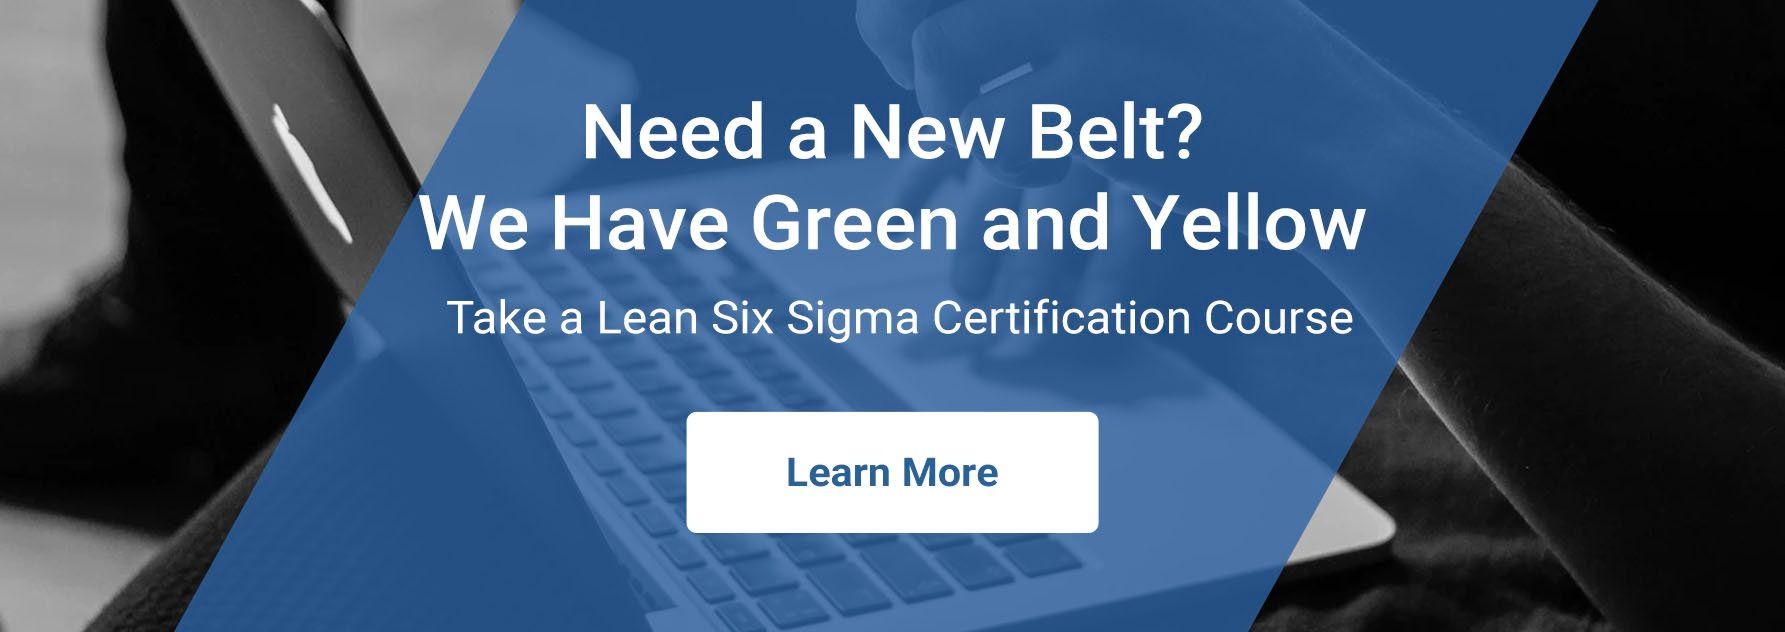 Lean Six Sigma CTA